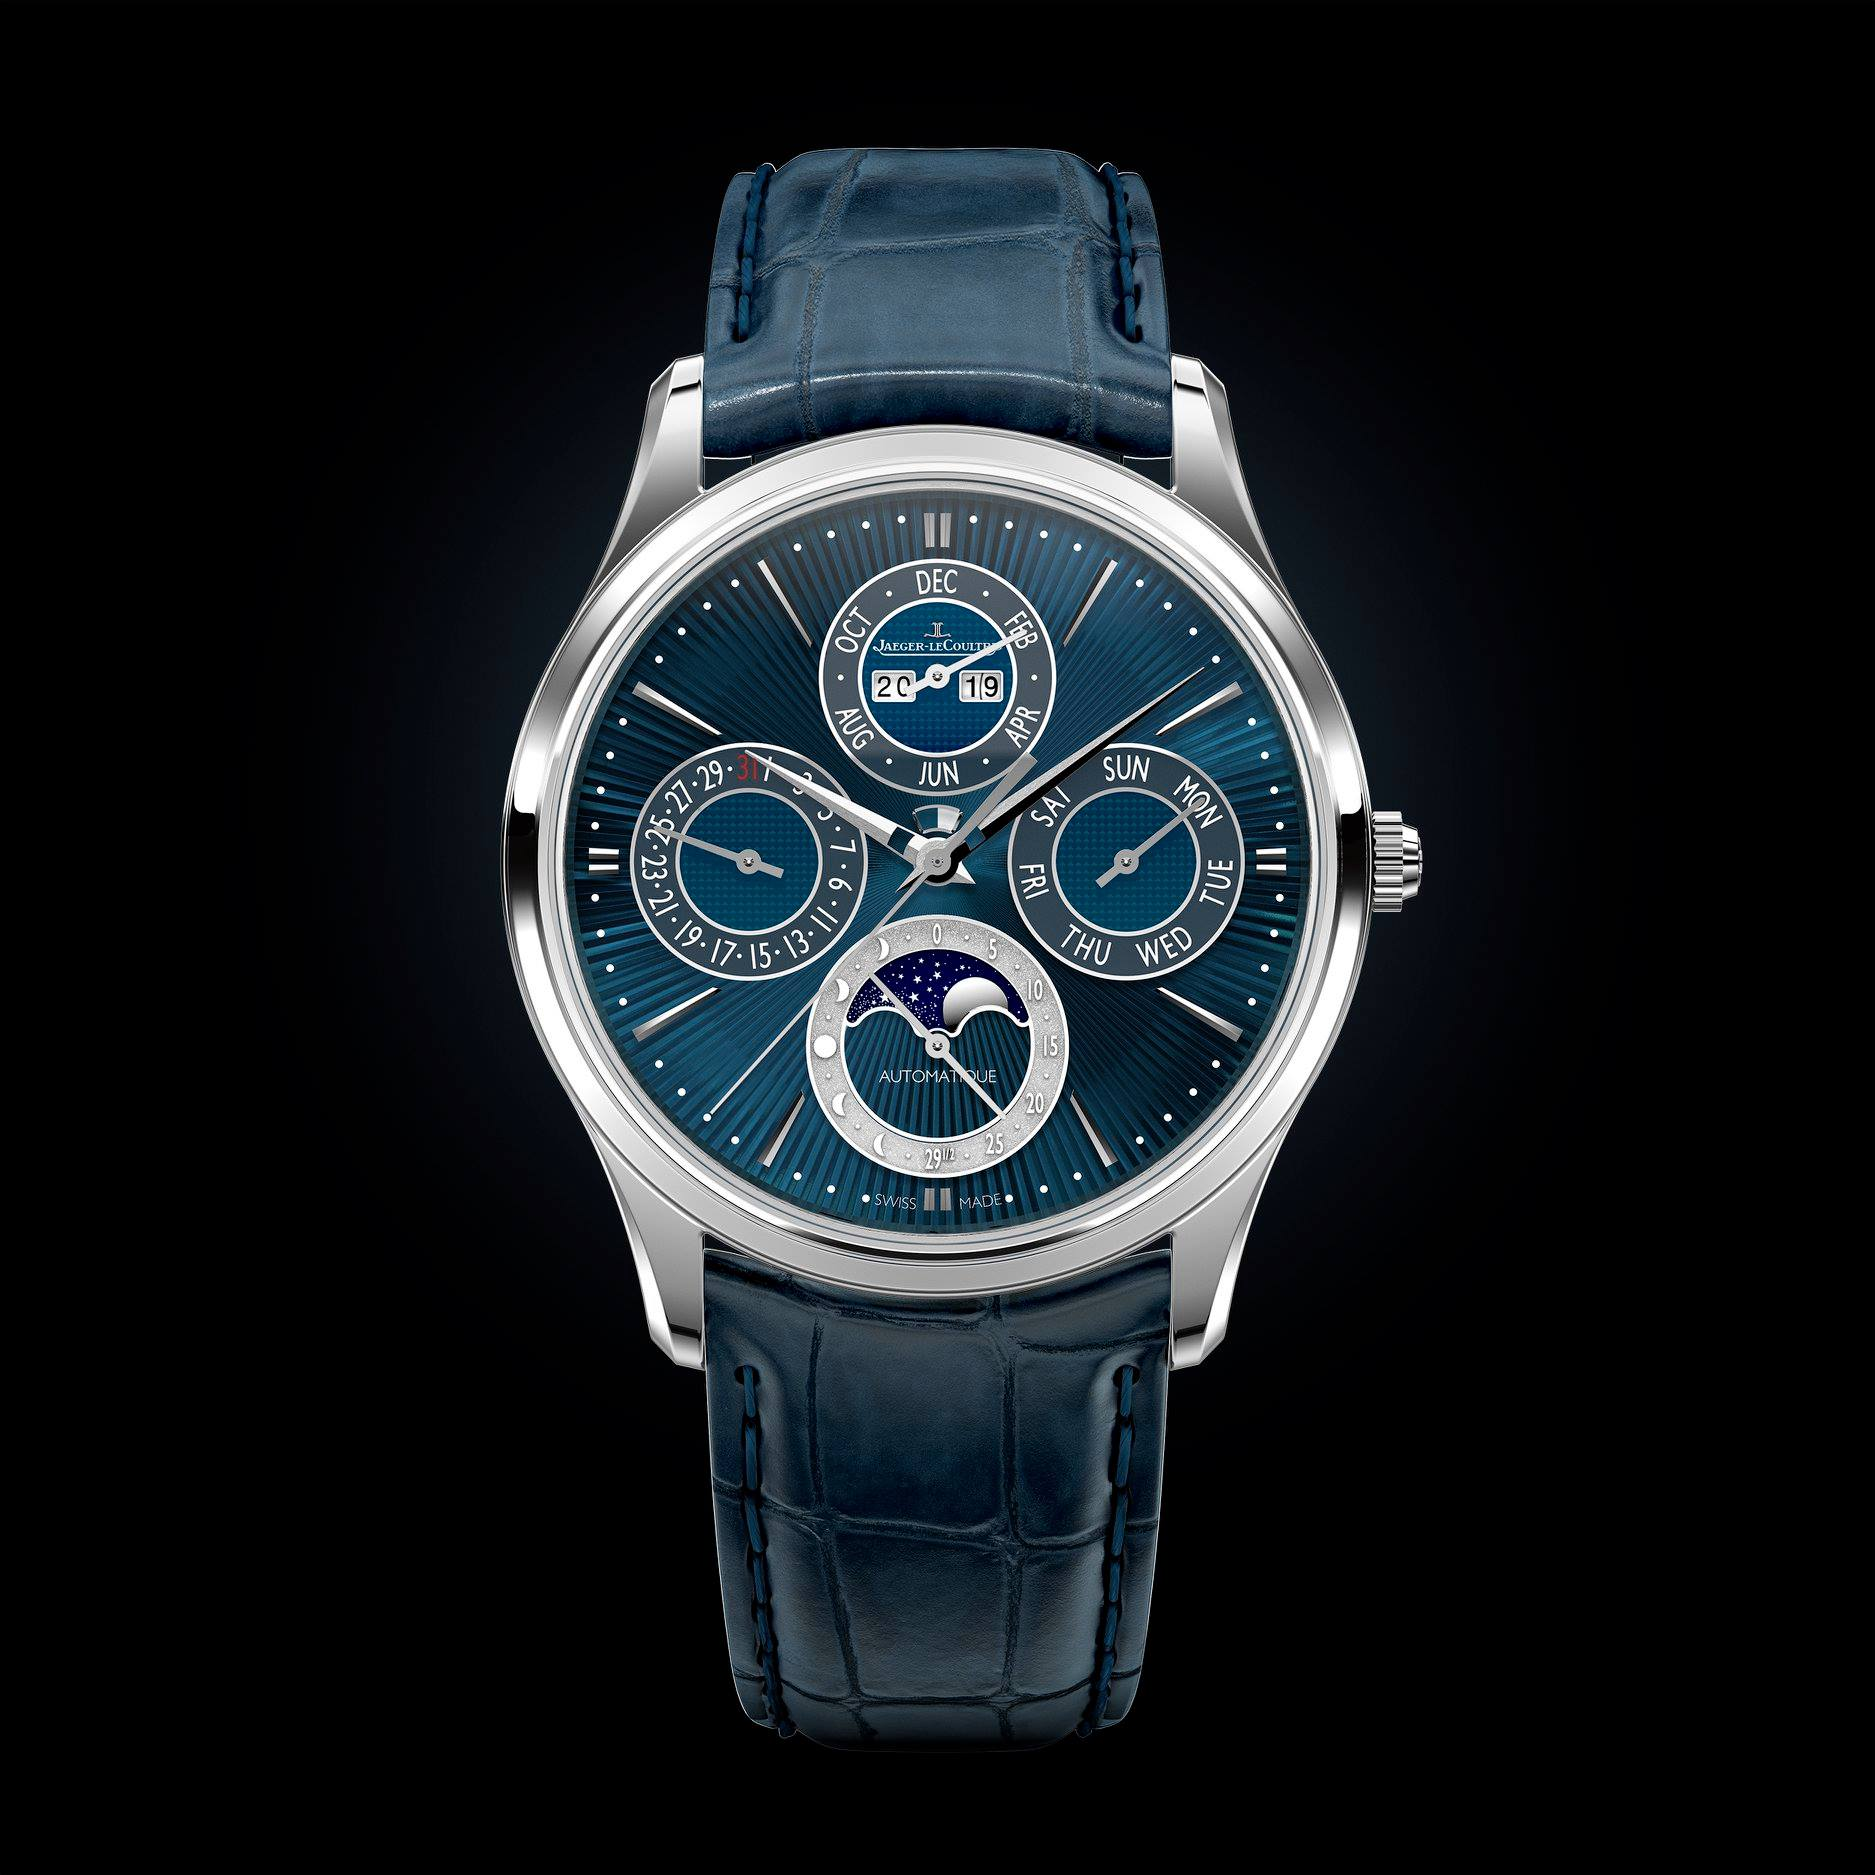 Jaeger-LeCoultre-Master-PC-2019